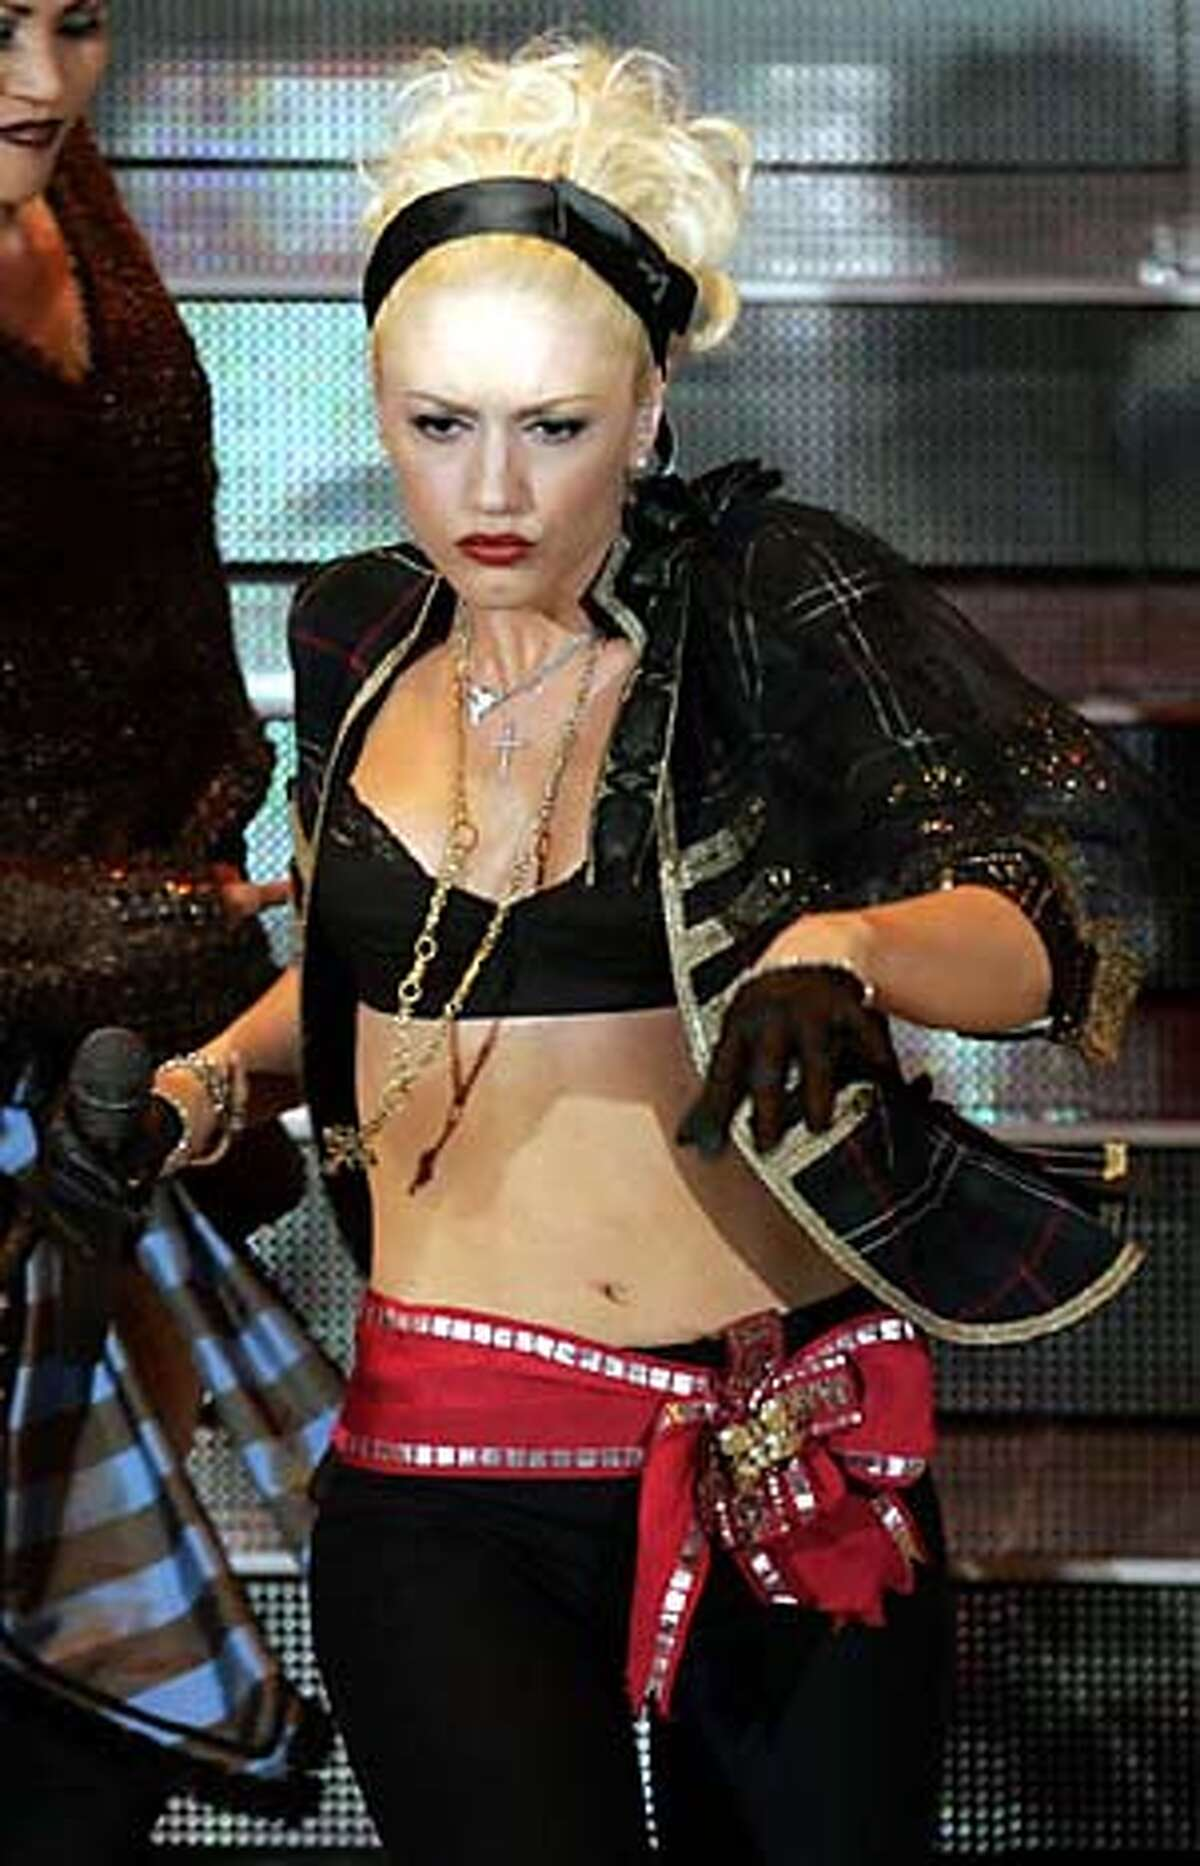 U.S. pop star and actress Gwen Stefani performs during the Festival di Sanremo Italian Songs contest, in San Remo, Italy, Friday, March 4, 2005. Gwen Stefani is one of the international guest stars featured in the show. (AP Photo/Luca Bruno) Ran on: 03-20-2005 Gwen Stefani made no friends with New Order.